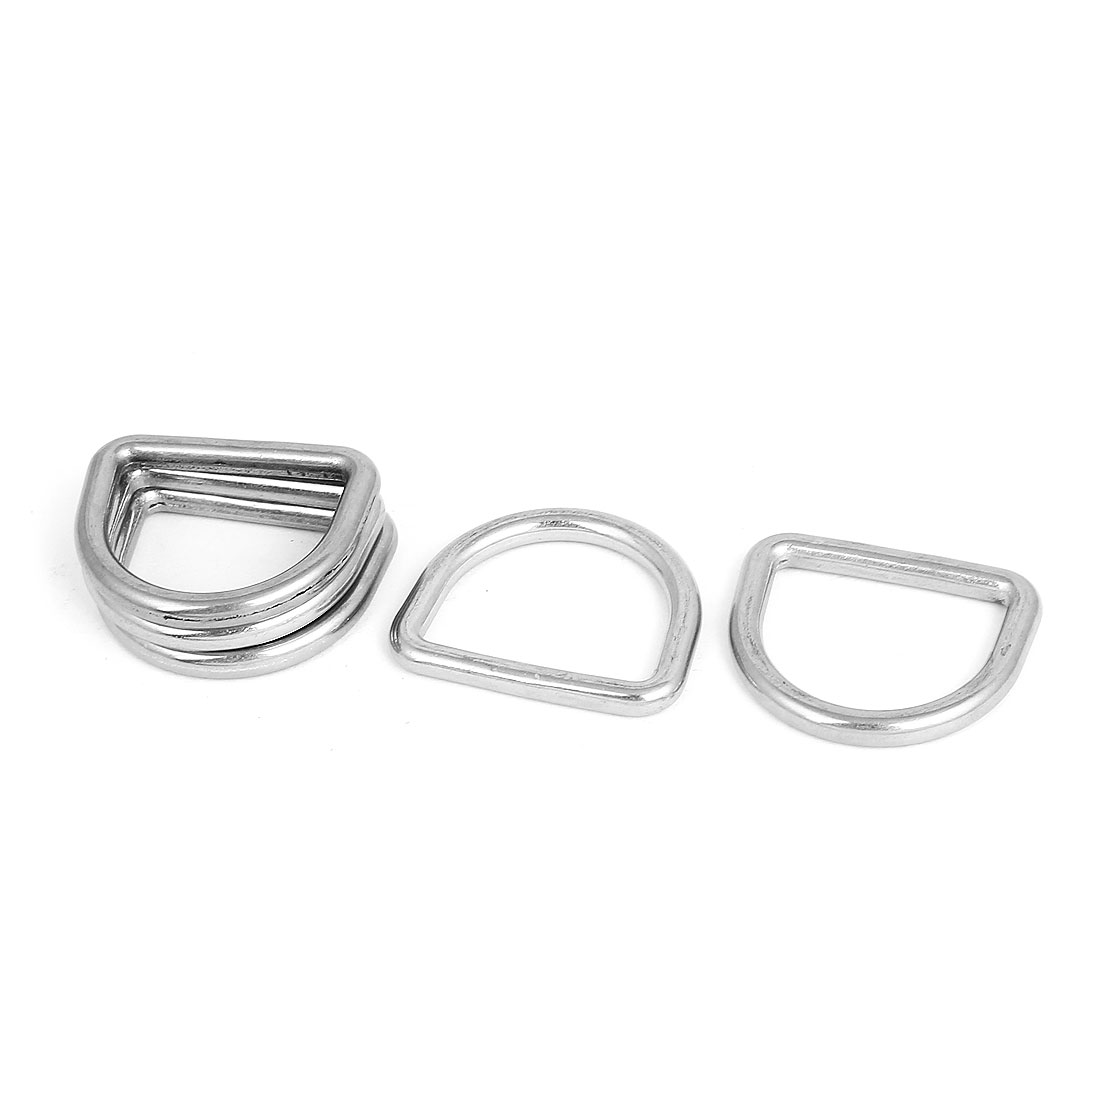 Stainless Steel D Ring Hooks D-Shaped Belt Buckles 5 Pcs for Bags Handbags